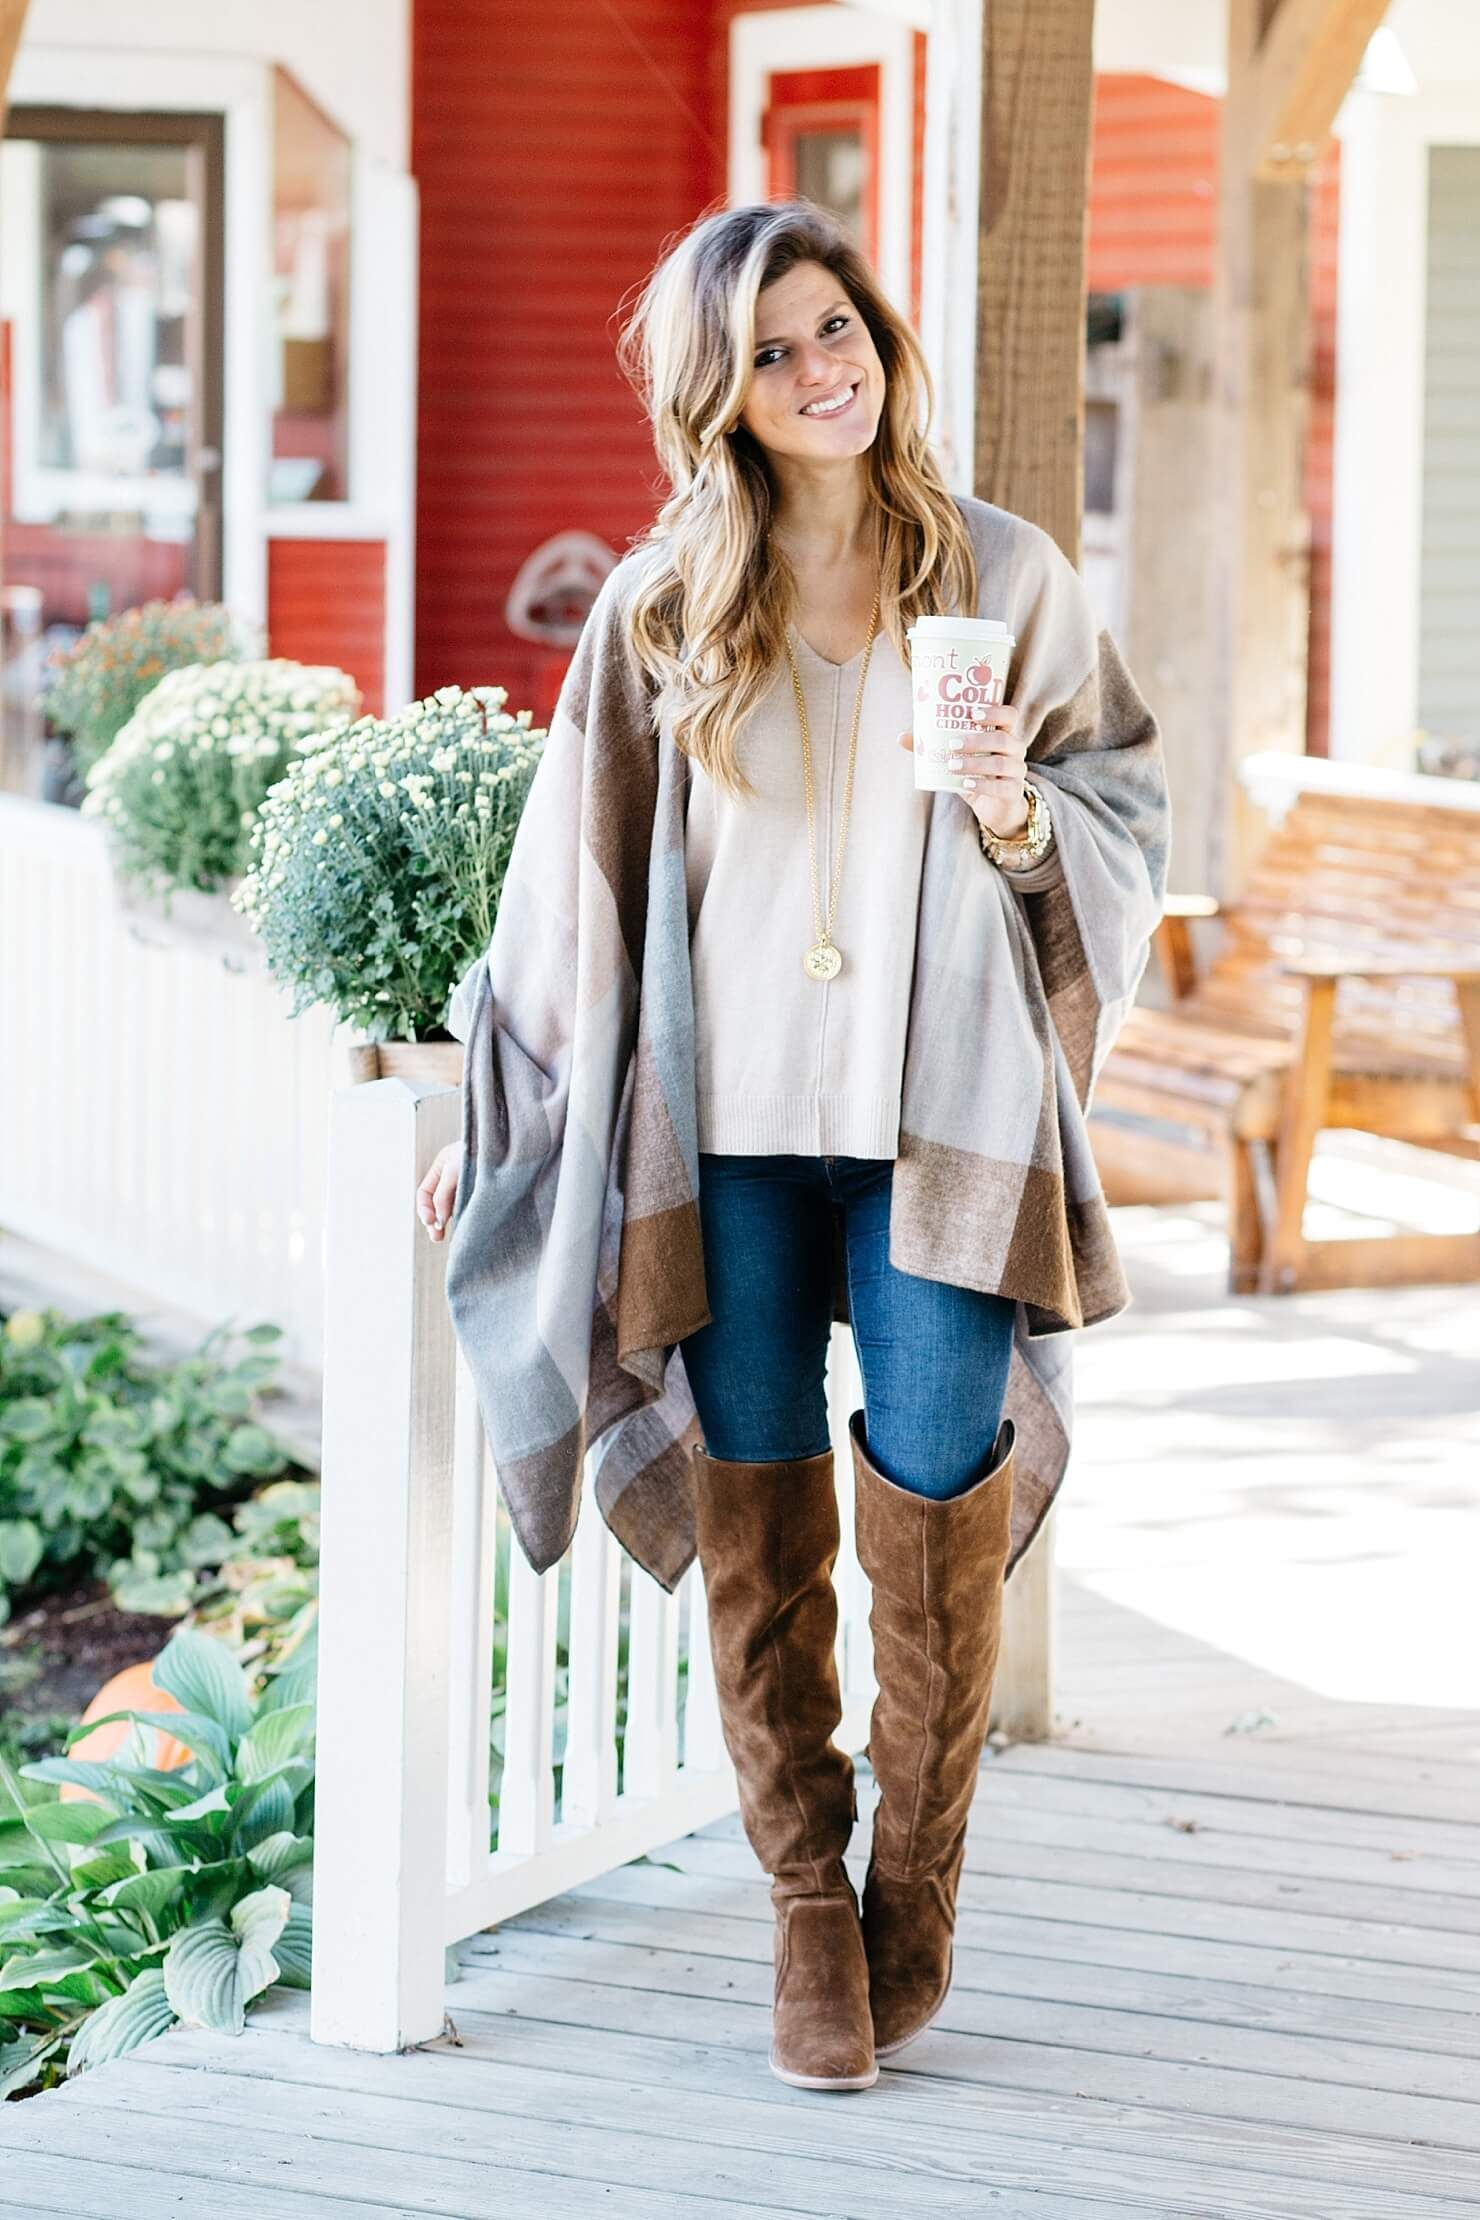 ac2952dffa0 How To Wear a Poncho Shawl - Pair It With Neutrals & Suede OTK Boots ...